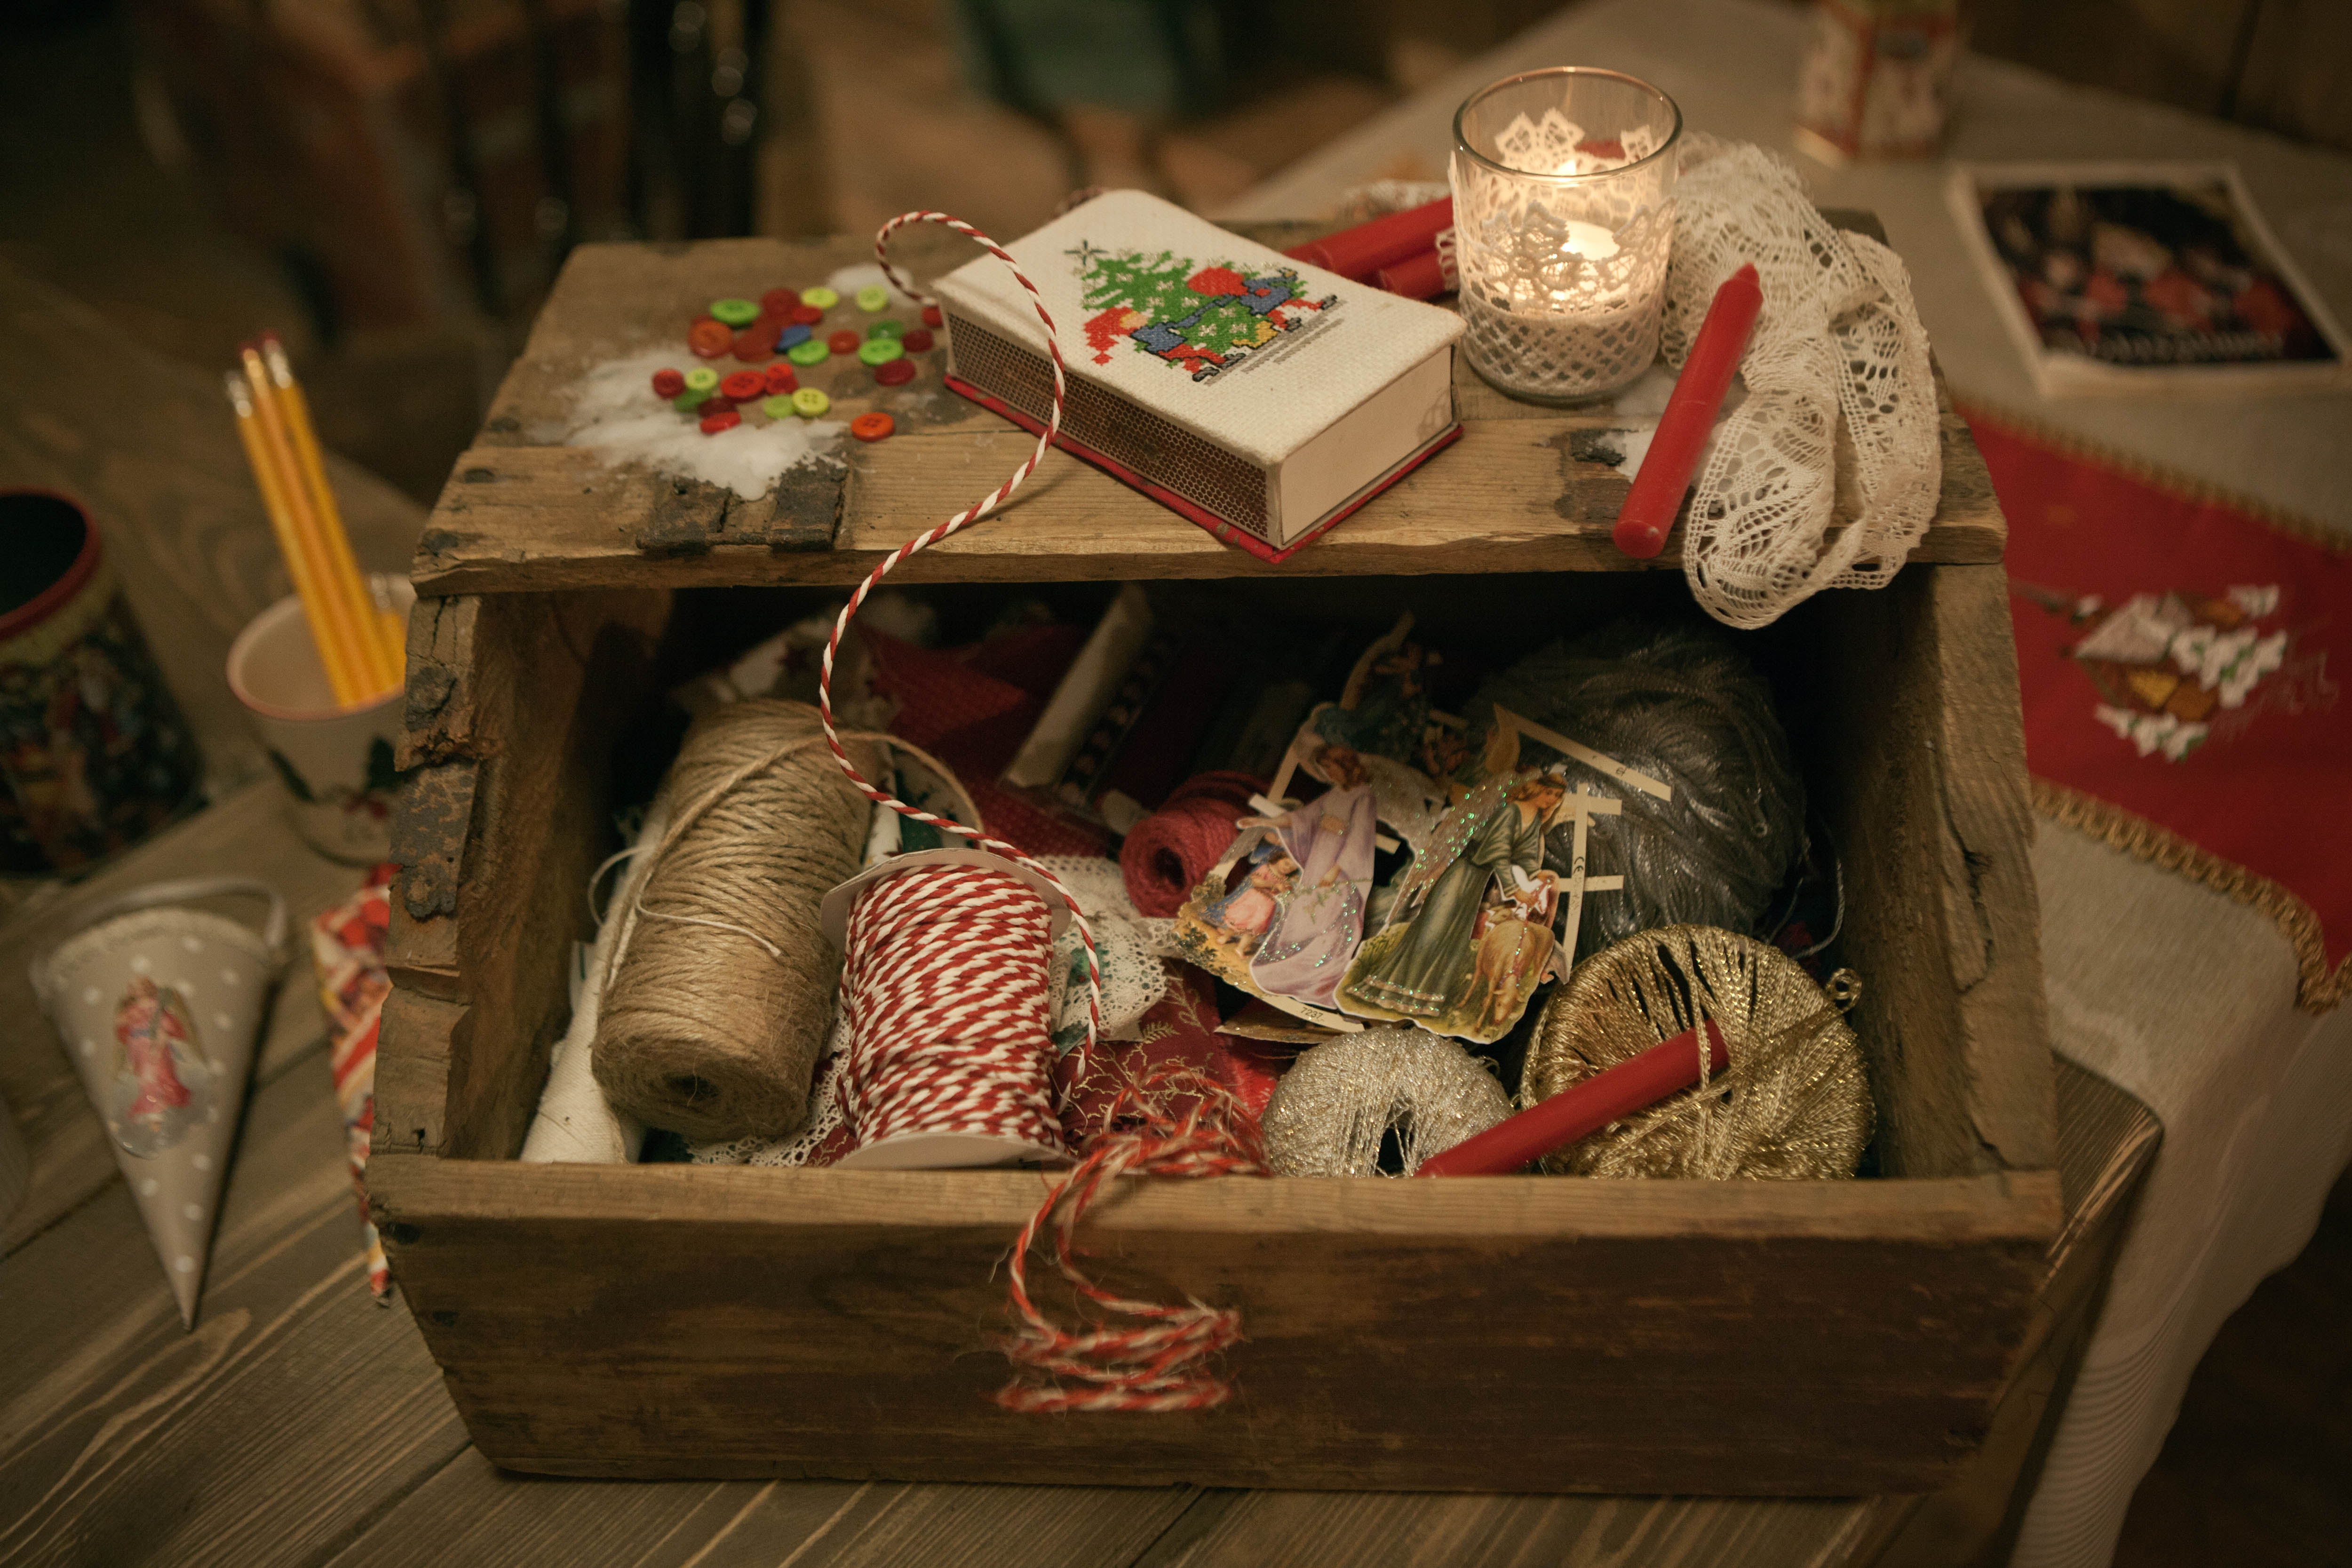 Charming Christmas | 2 Day Yuletide Adventure in the Highlands - day 2